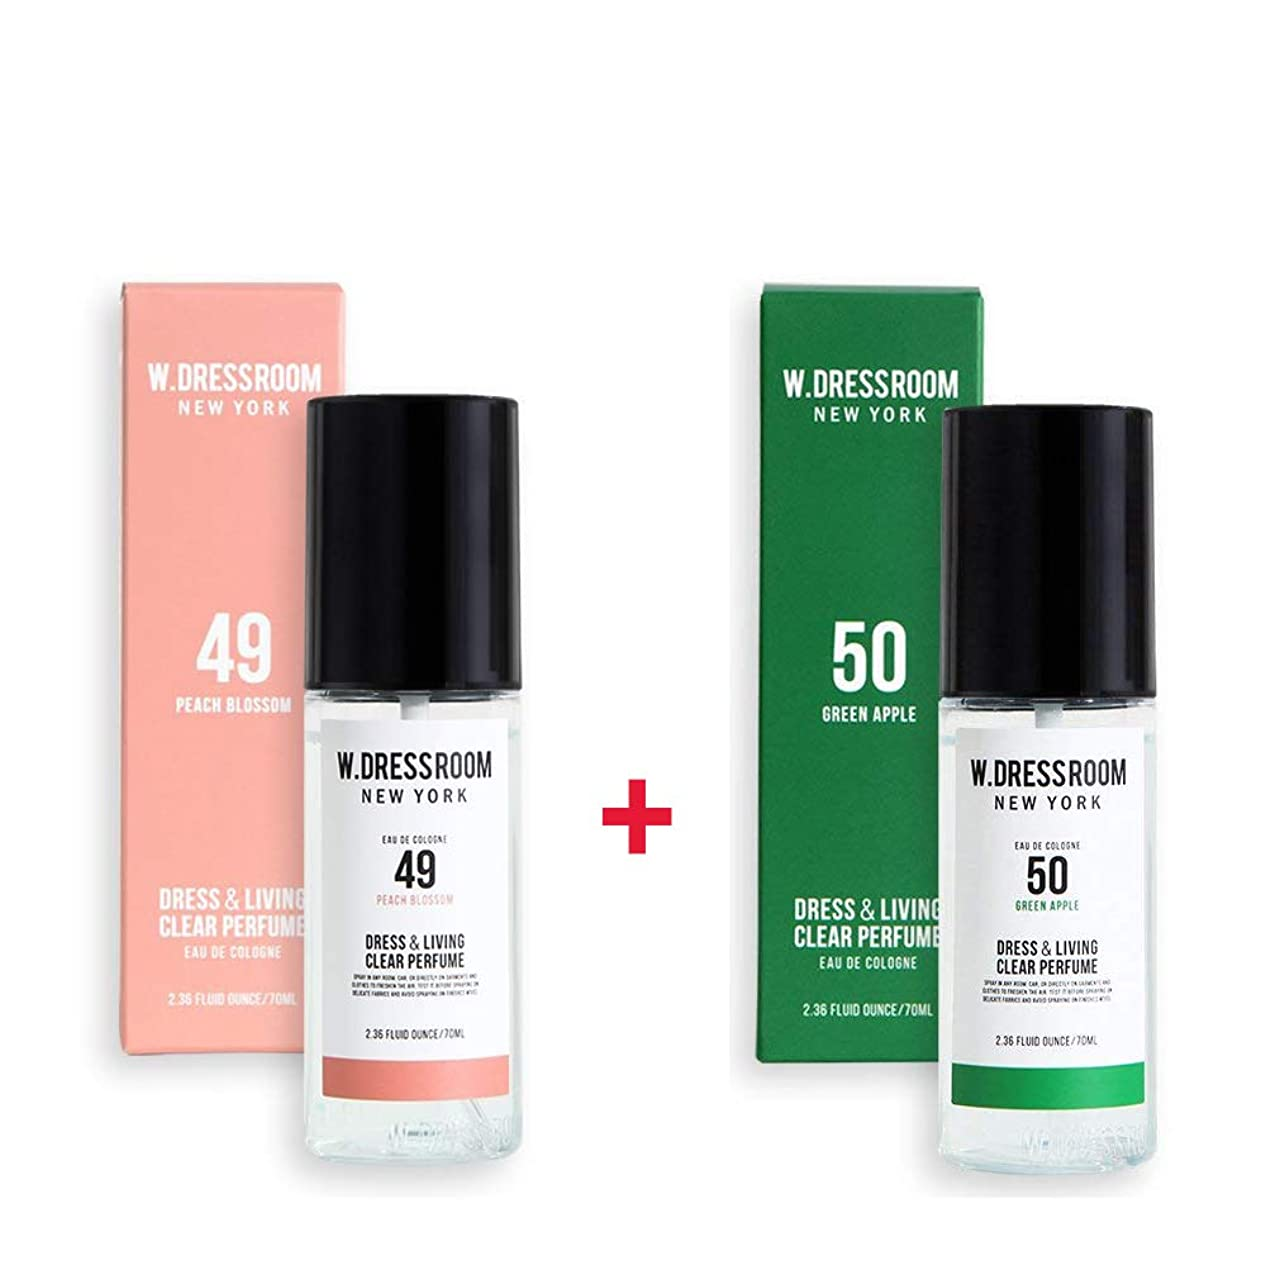 更新する洞察力謙虚W.DRESSROOM Dress & Living Clear Perfume 70ml (No 49 Peach Blossom)+(No 50 Green Apple)